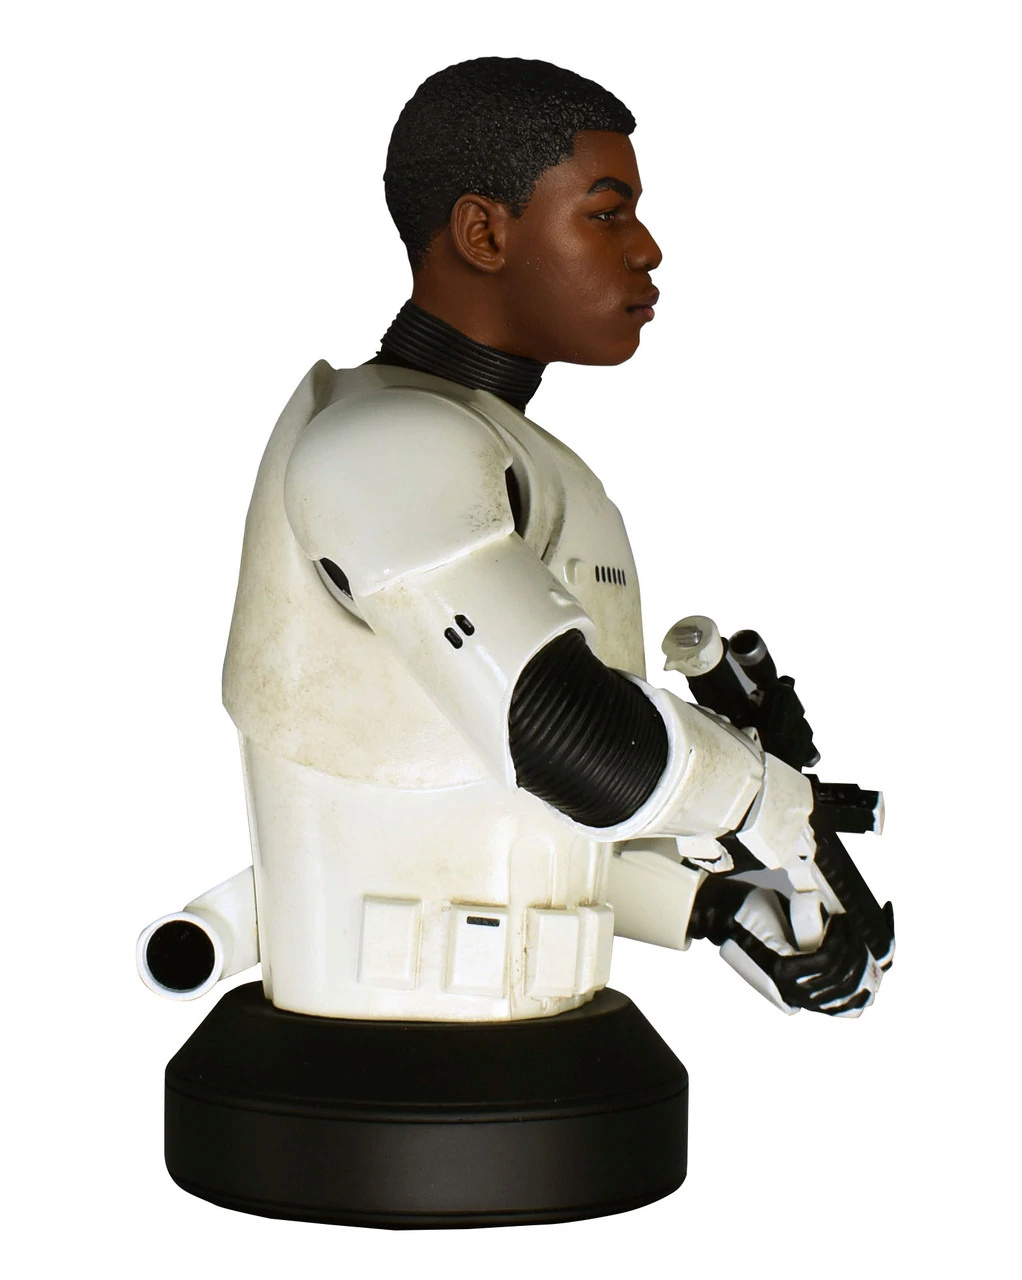 Finn (FN-2187) Mini Bust - The Force Awakens - Gentle Giant Finn_m17